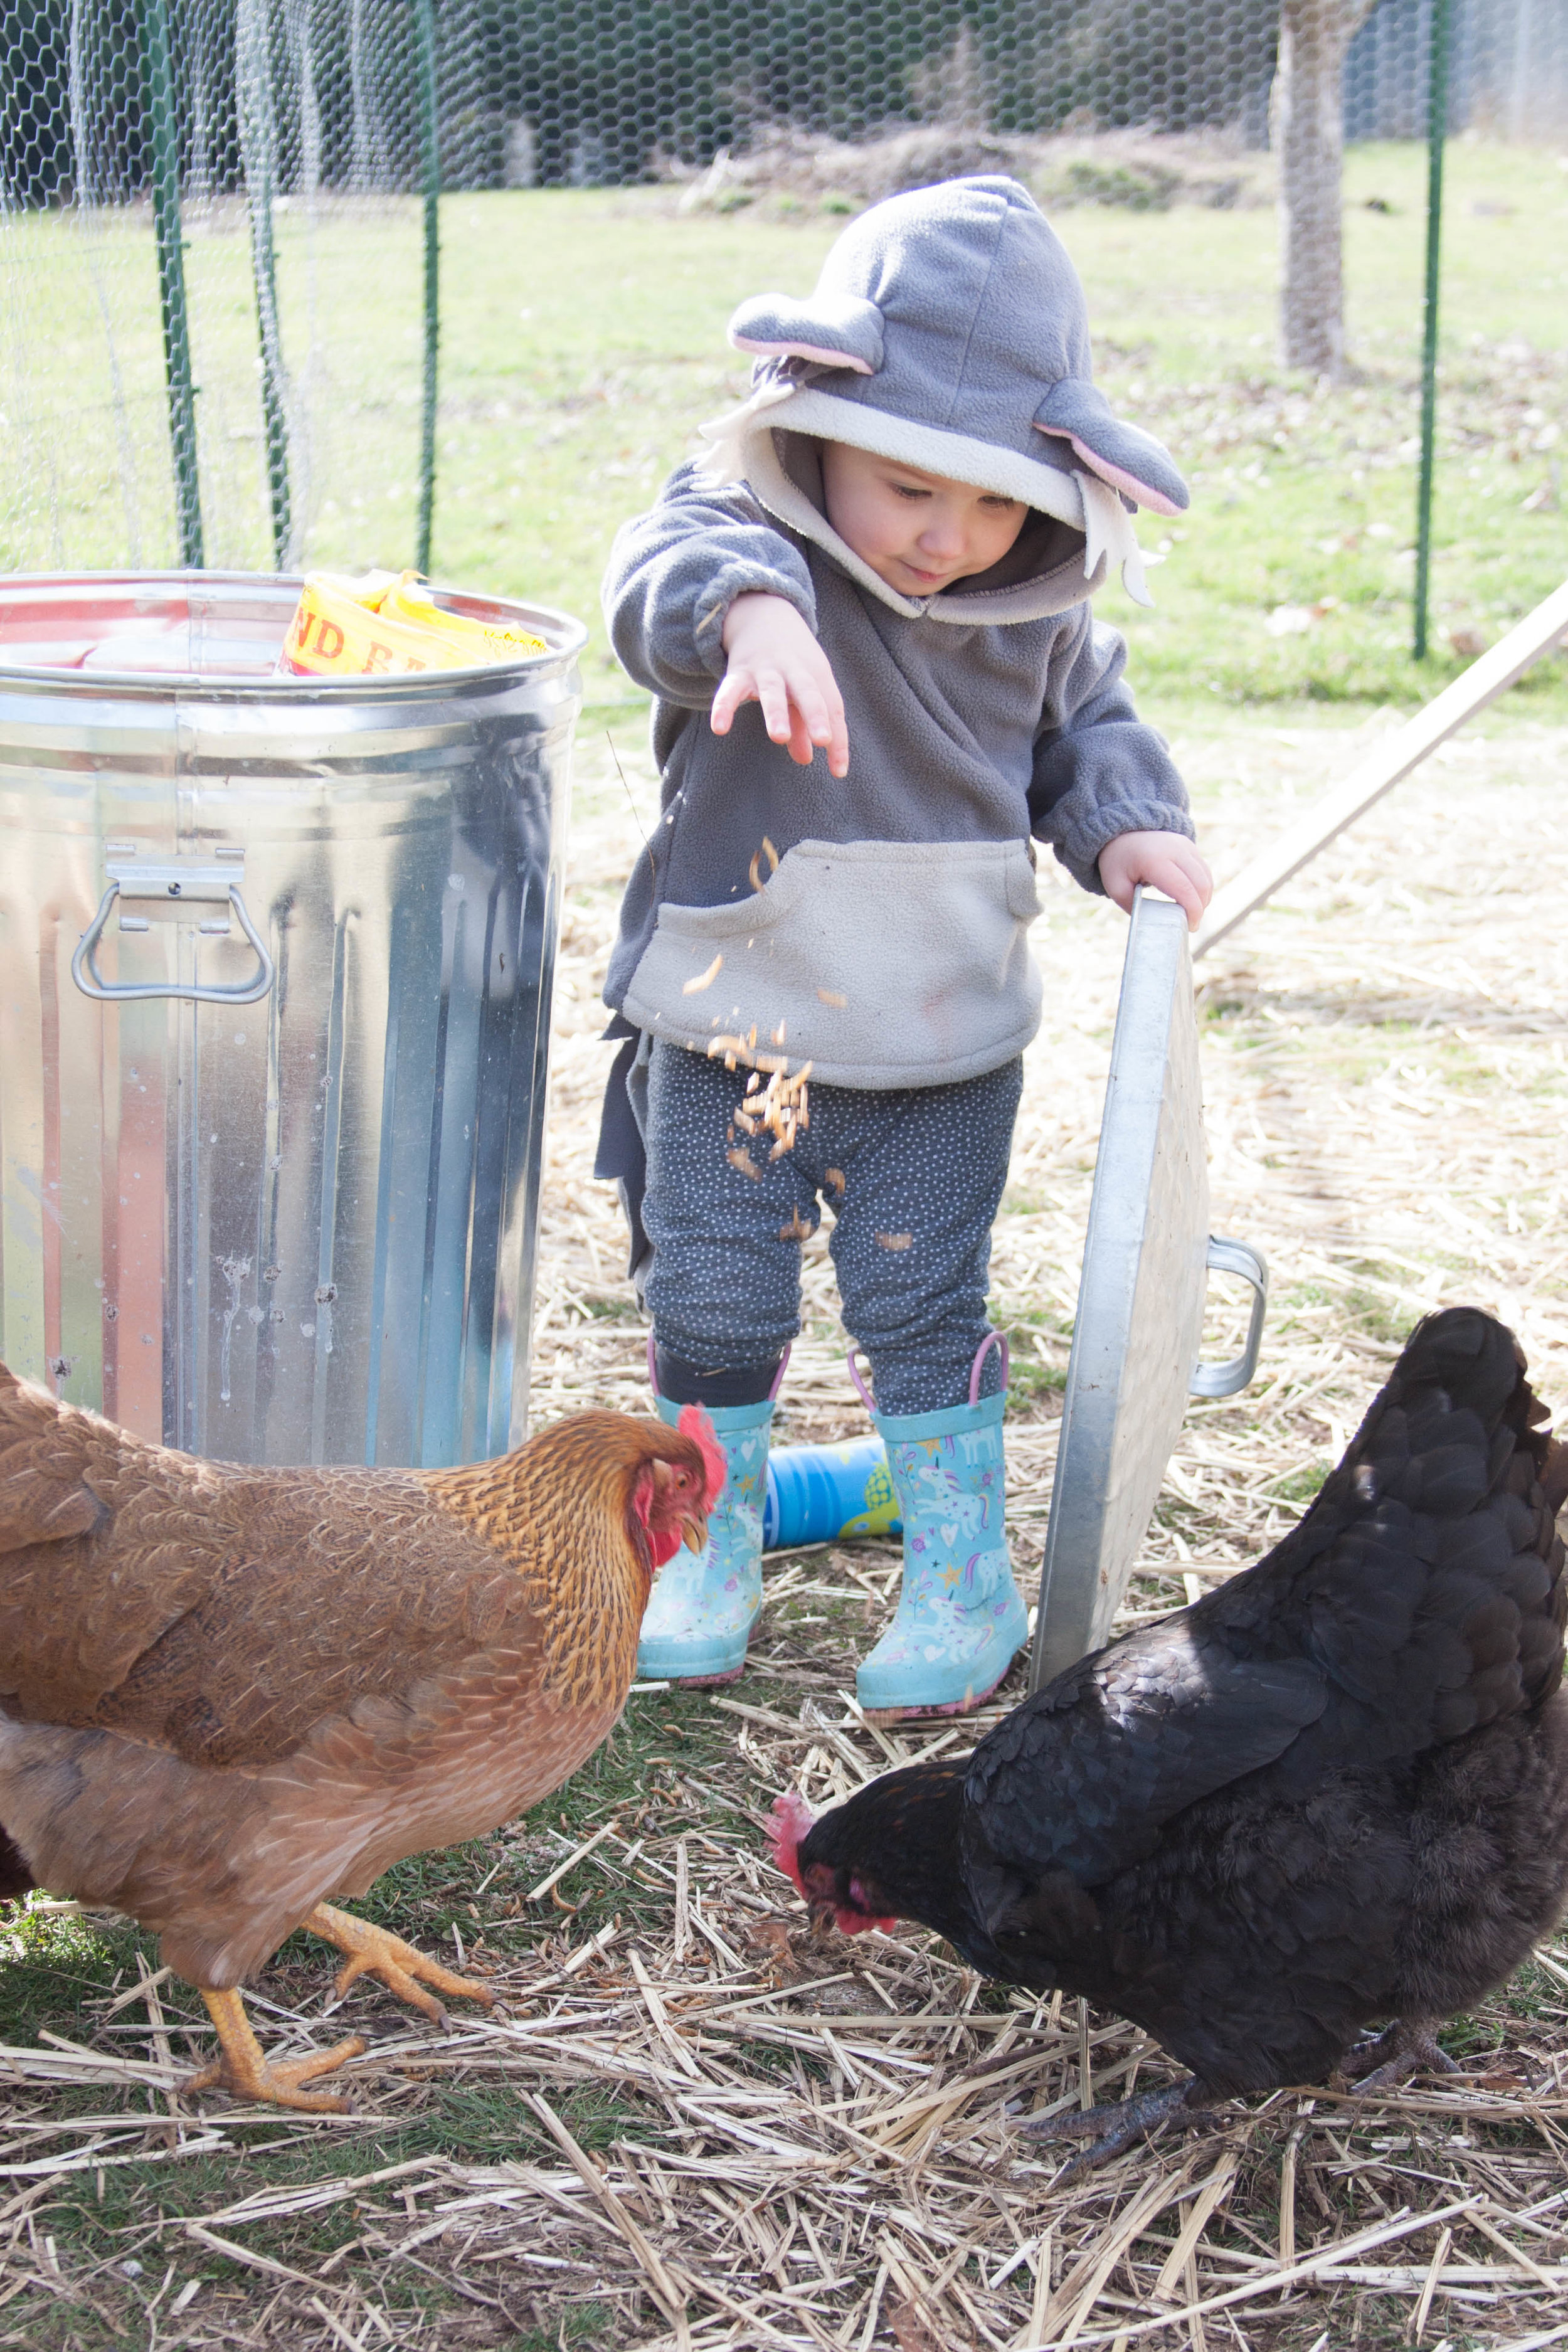 Aurora at 23 months giving the chickens mealworms.